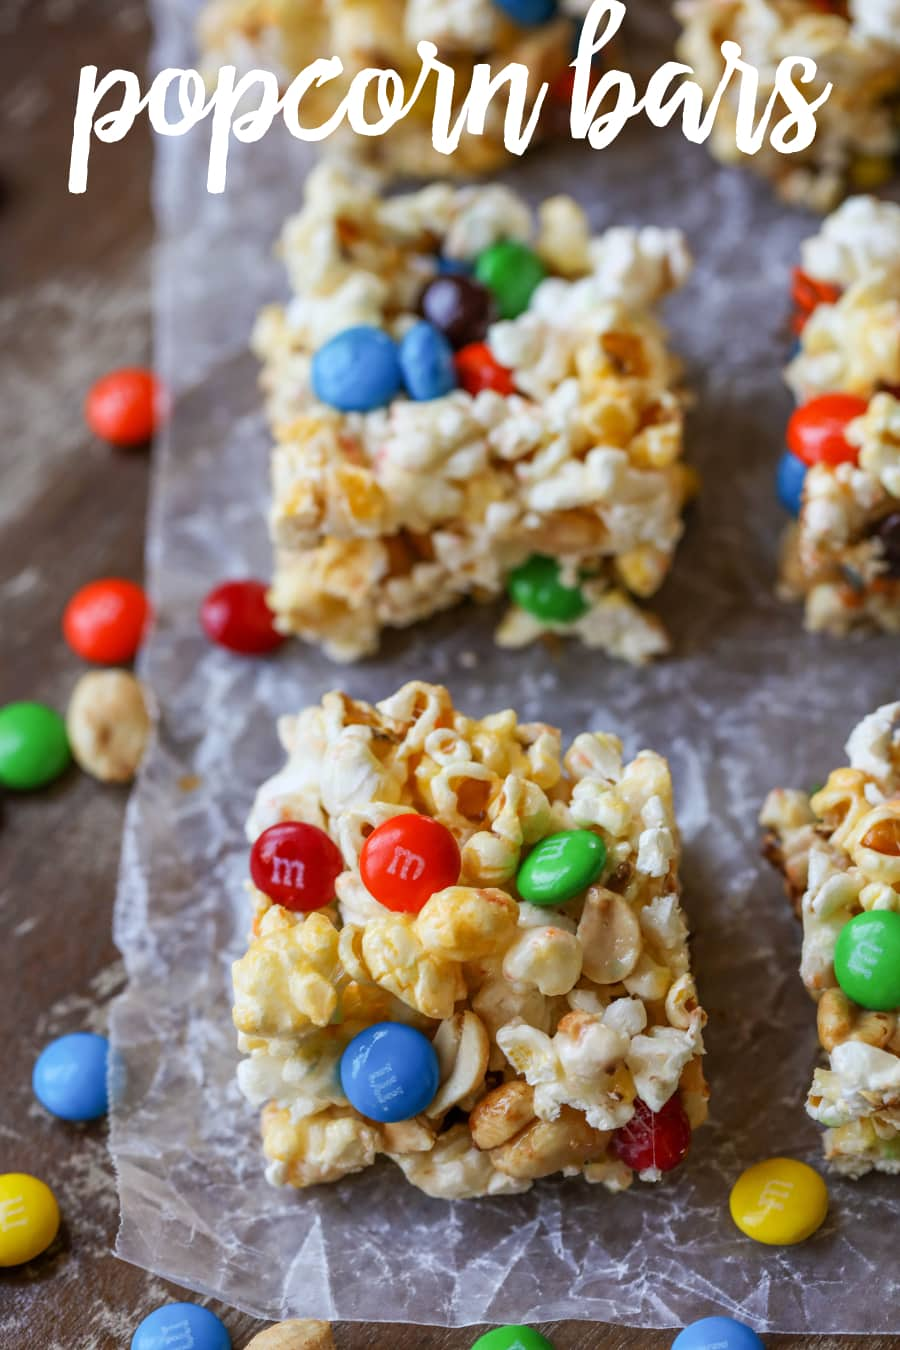 Popcorn Bars - Delicious bars made from popcorn, marshmallows, peanuts and M&Ms. Everybody loves this yummy treat!